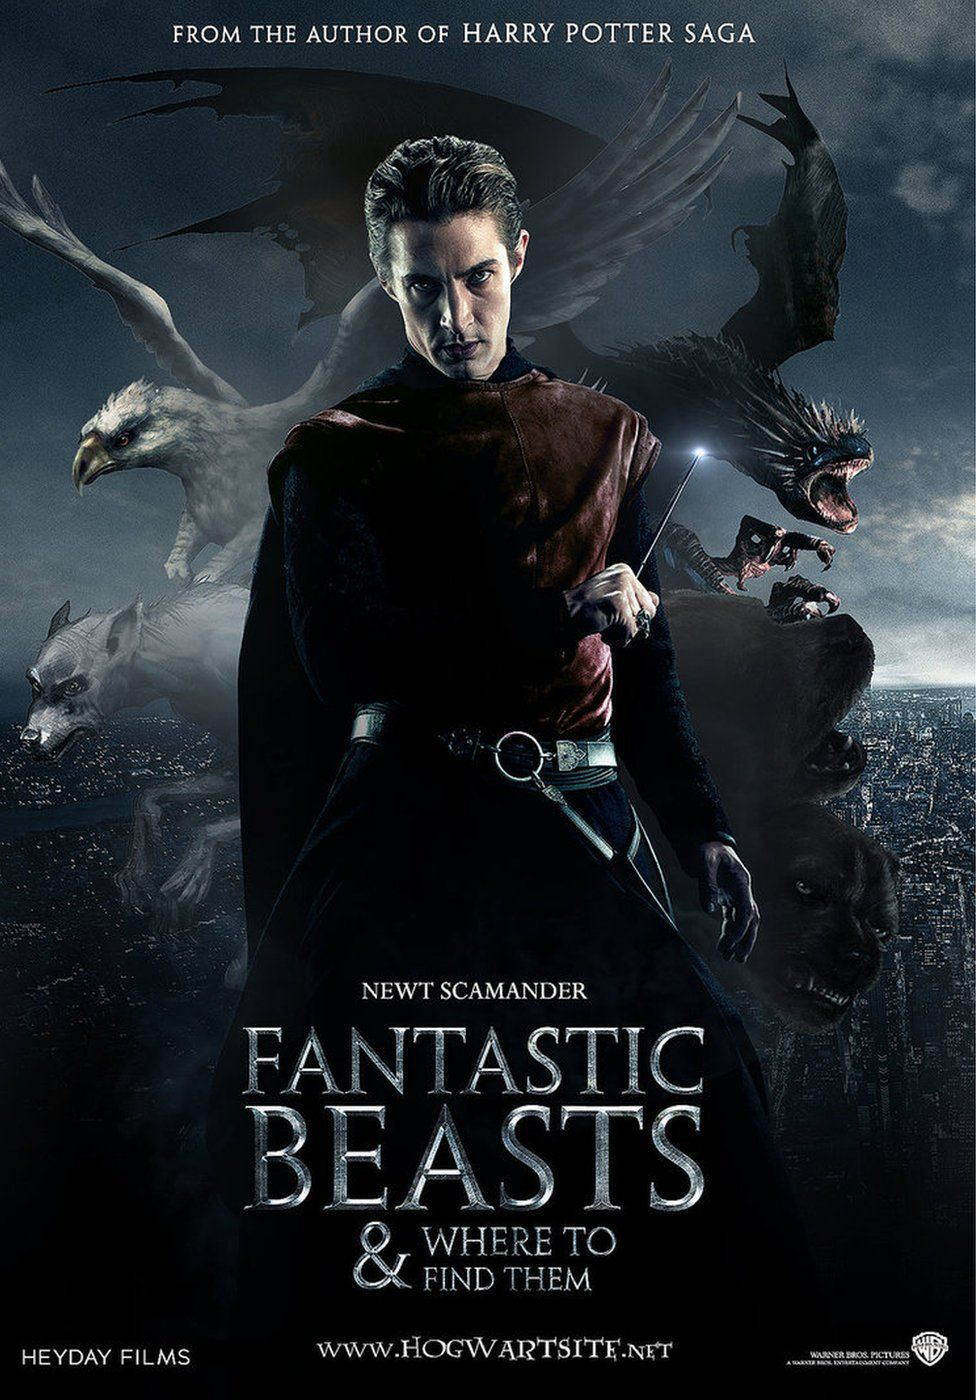 1207 watch fantastic beasts and where to find them for free online